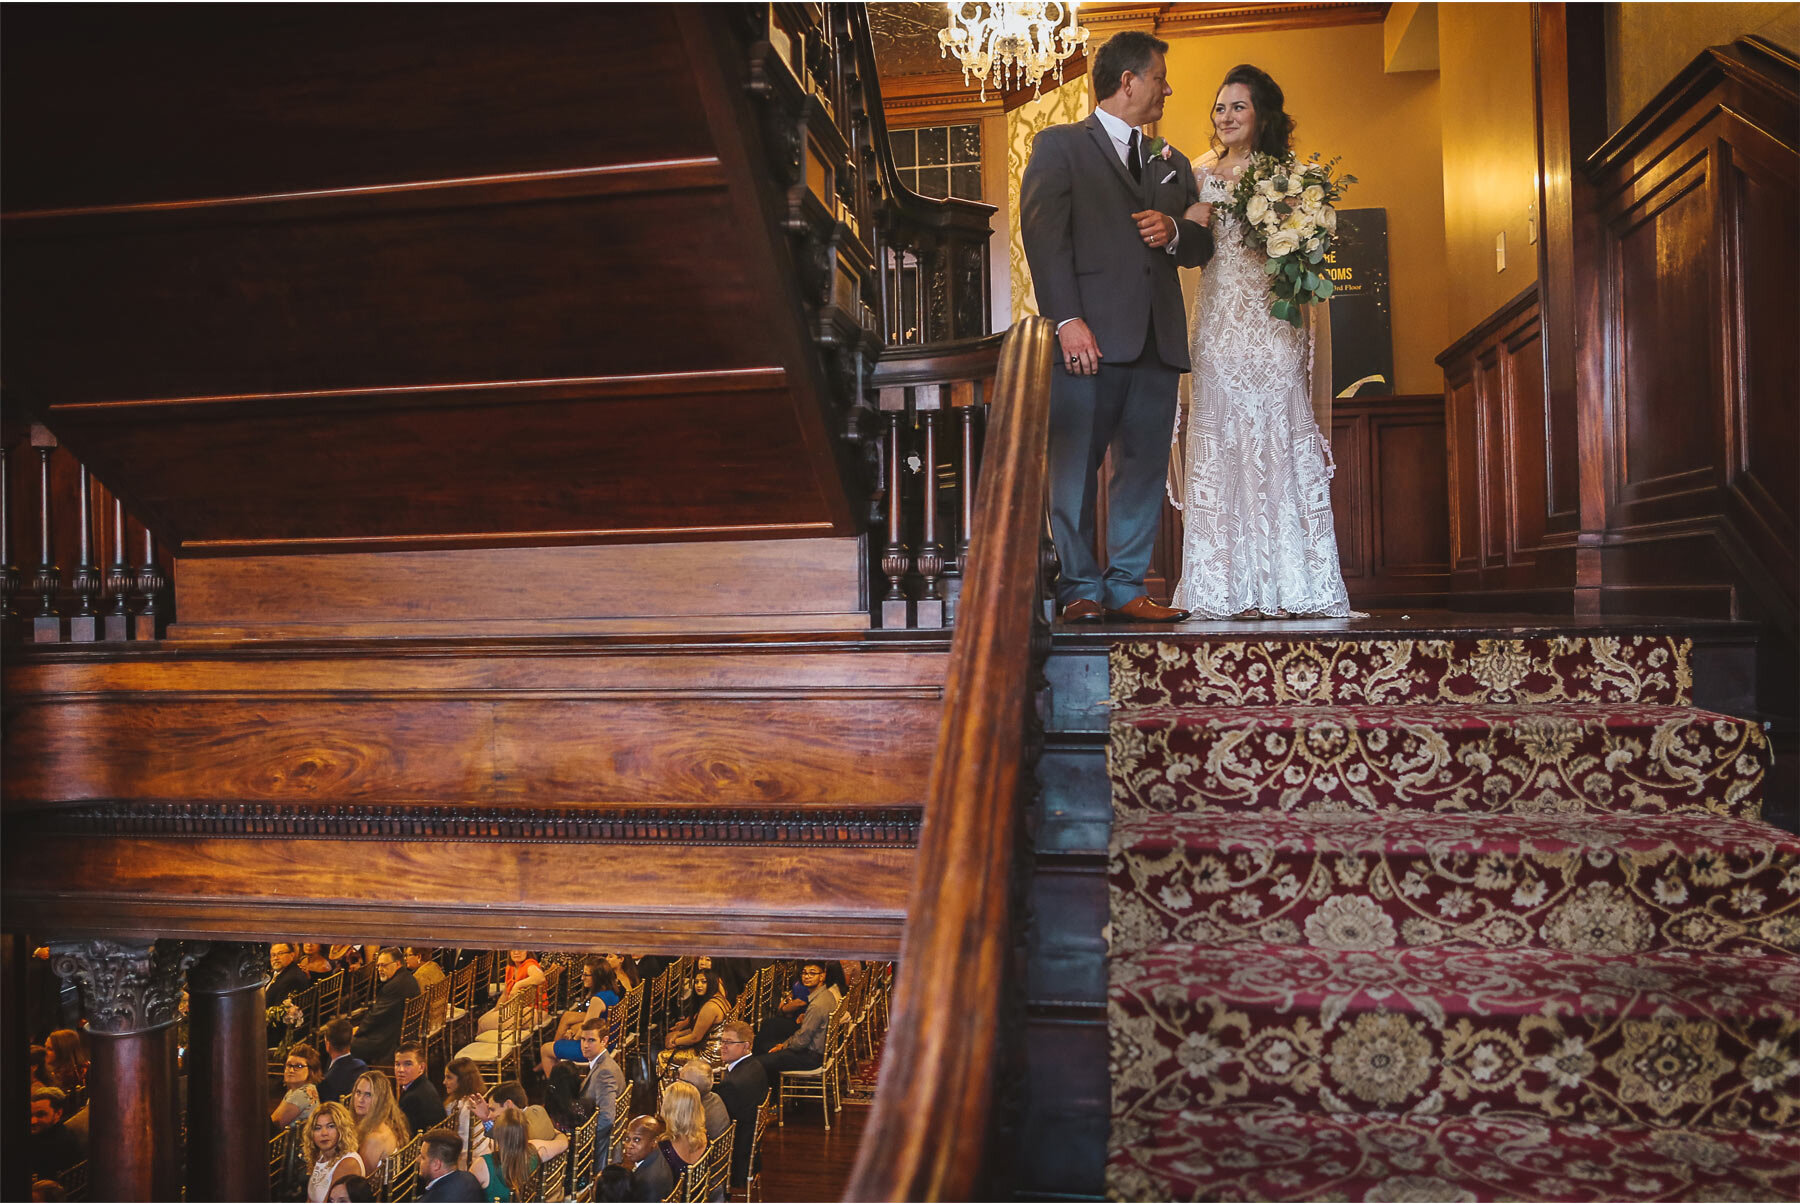 08-Wedding-by-Vick-Photography-Minneapolis-Minnesota-Semple-Mansion-Historic-Venue-Bride-Father-Ceremony-Kaitlyn-and-Nate.jpg